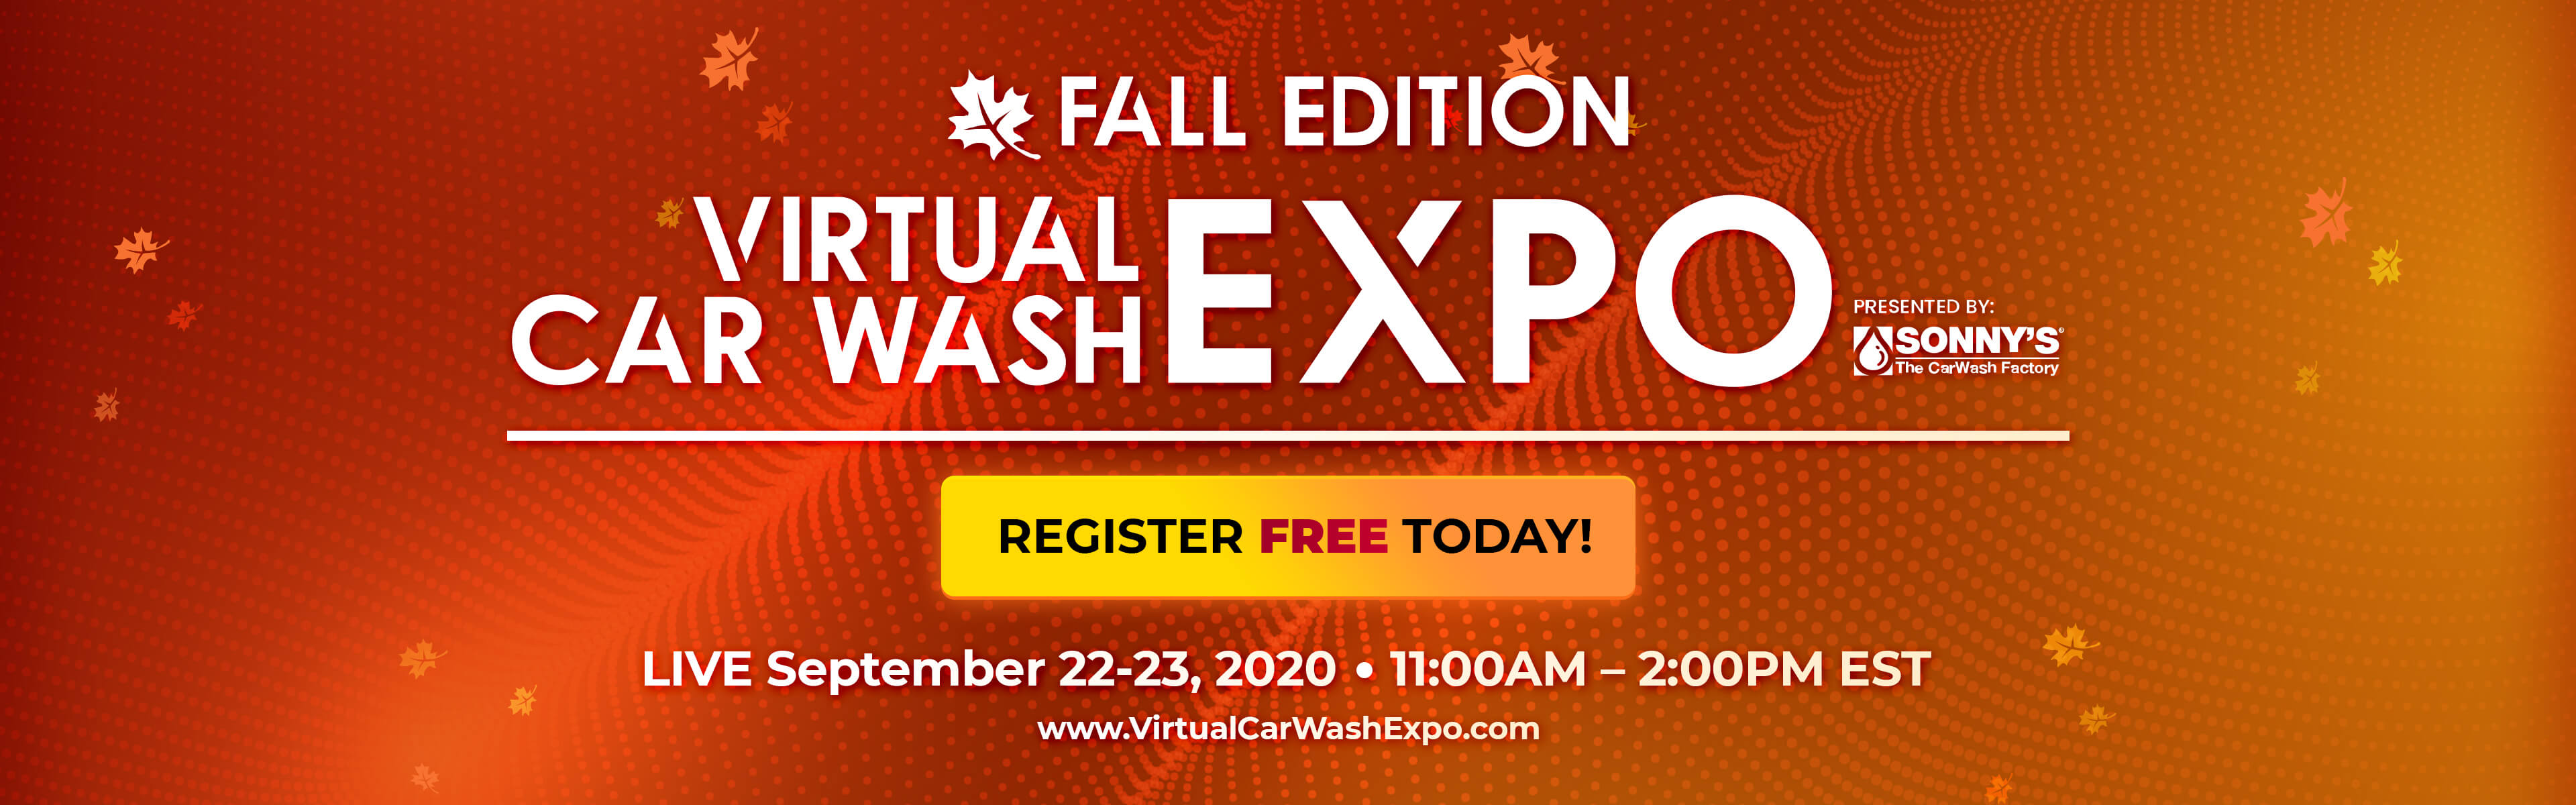 Register Free Today for the Virtual CarWash Expo 2020 Fall Edition - LIVE September 22-23, 2020 from 11:00AM – 2:00PM EST.